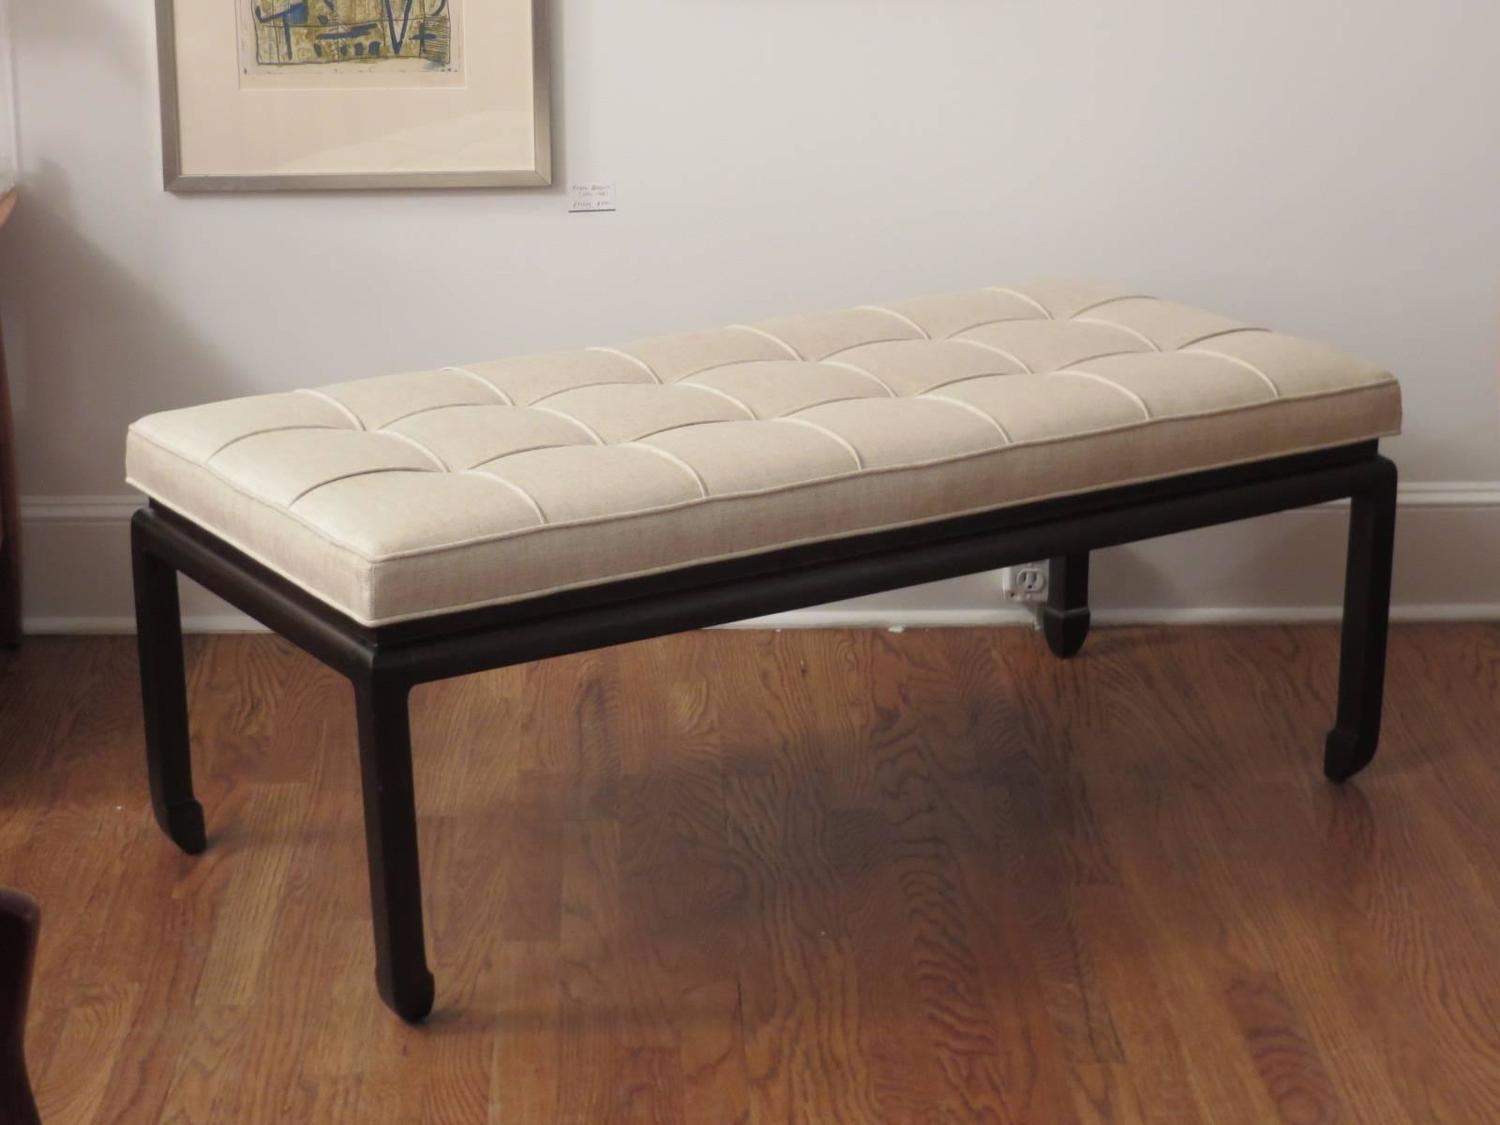 Asian Style Upholstered Bench For Sale At 1stdibs